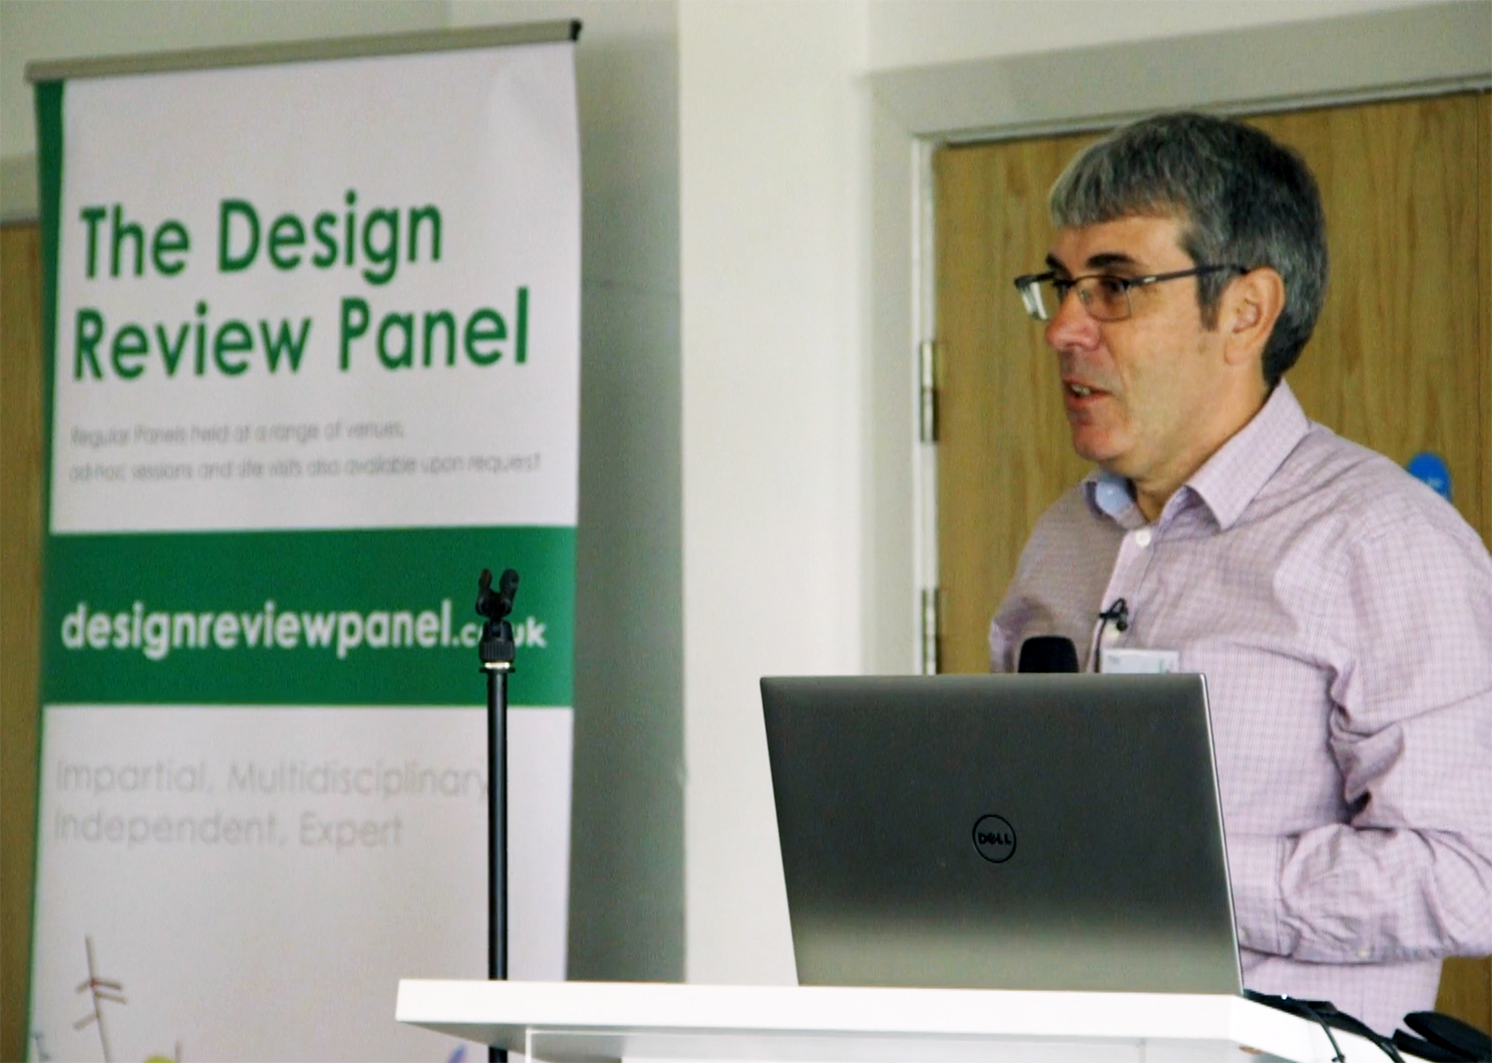 Tim Burton Design Review Panel CPD